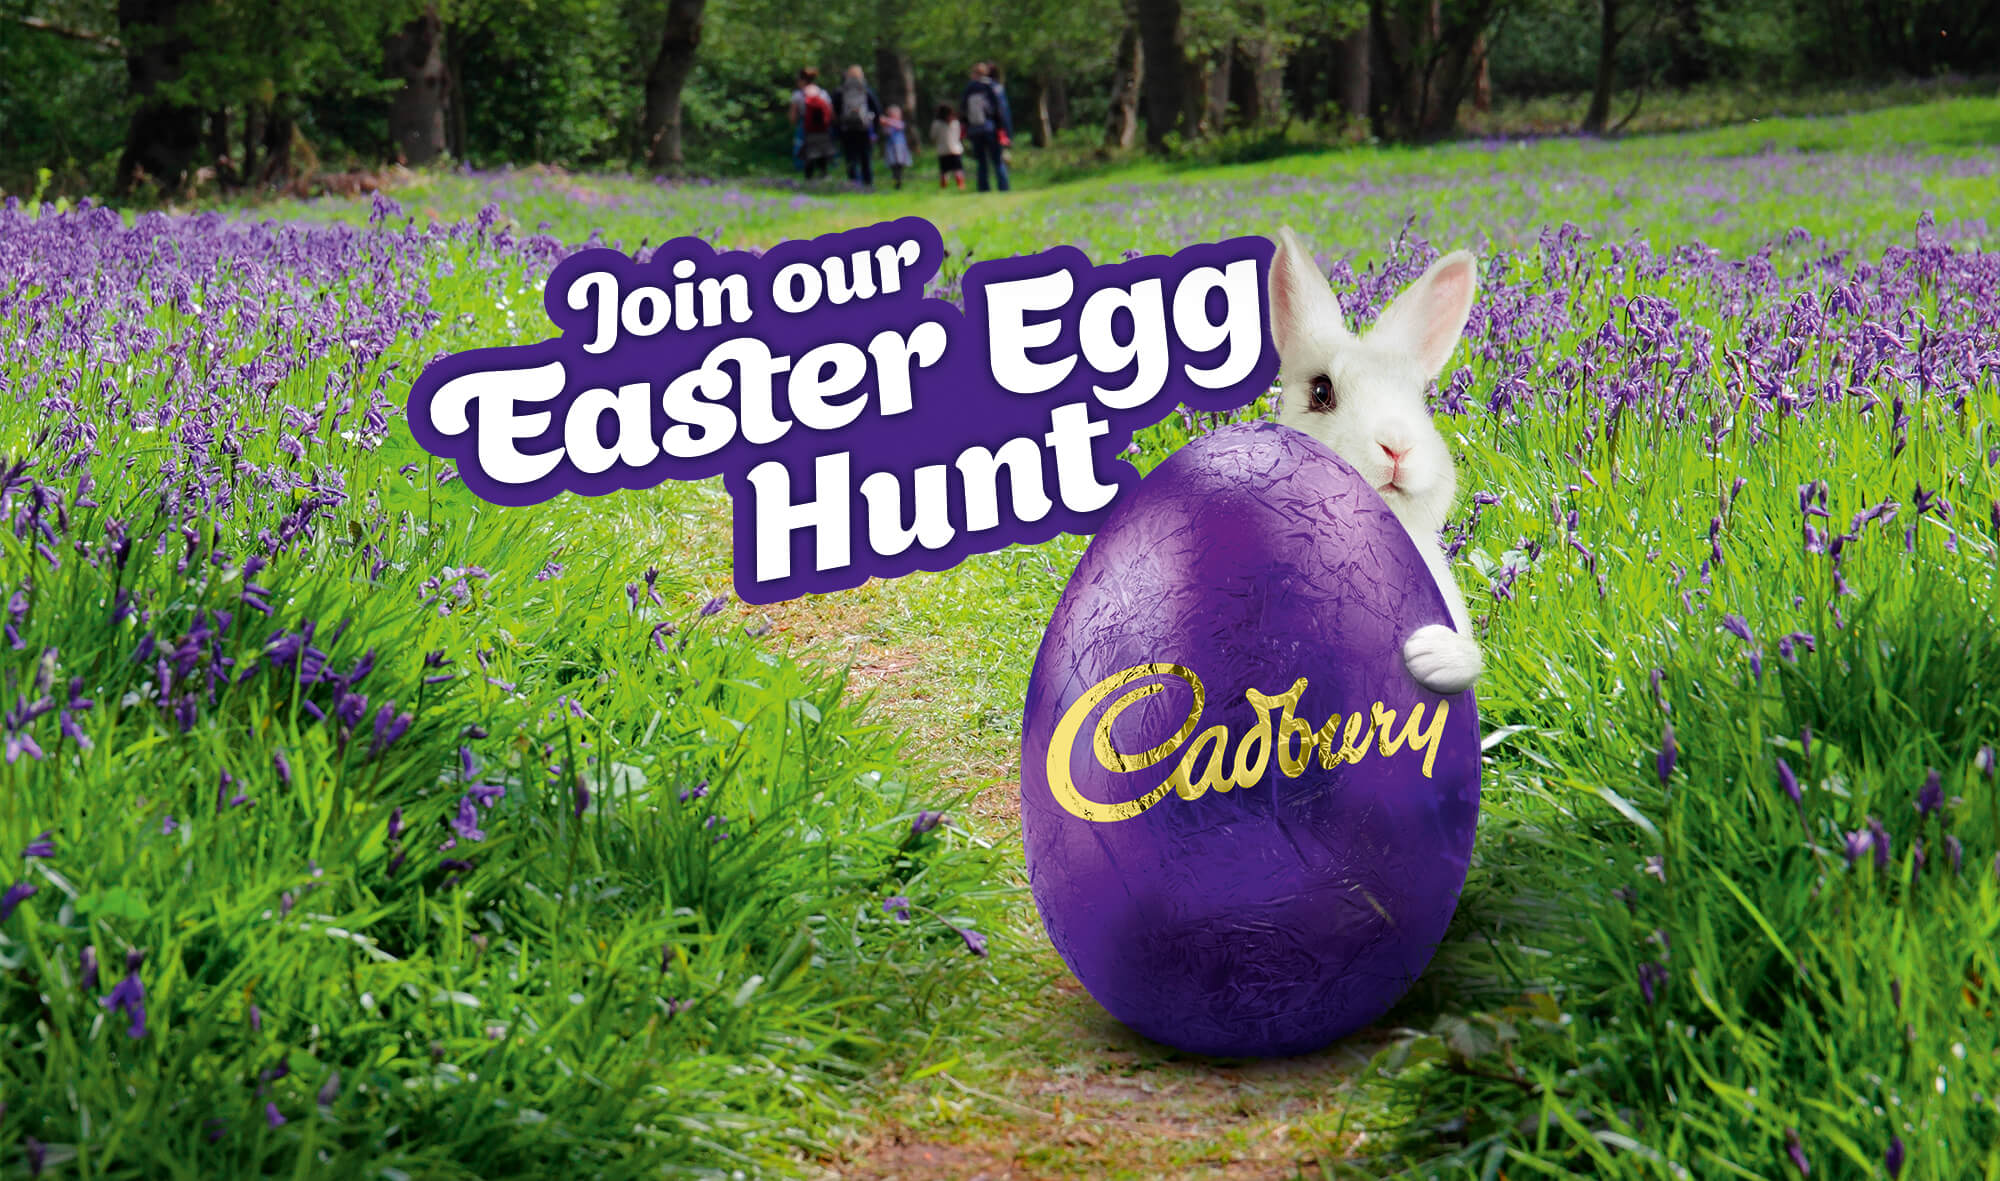 Join our Easter Egg Hunt